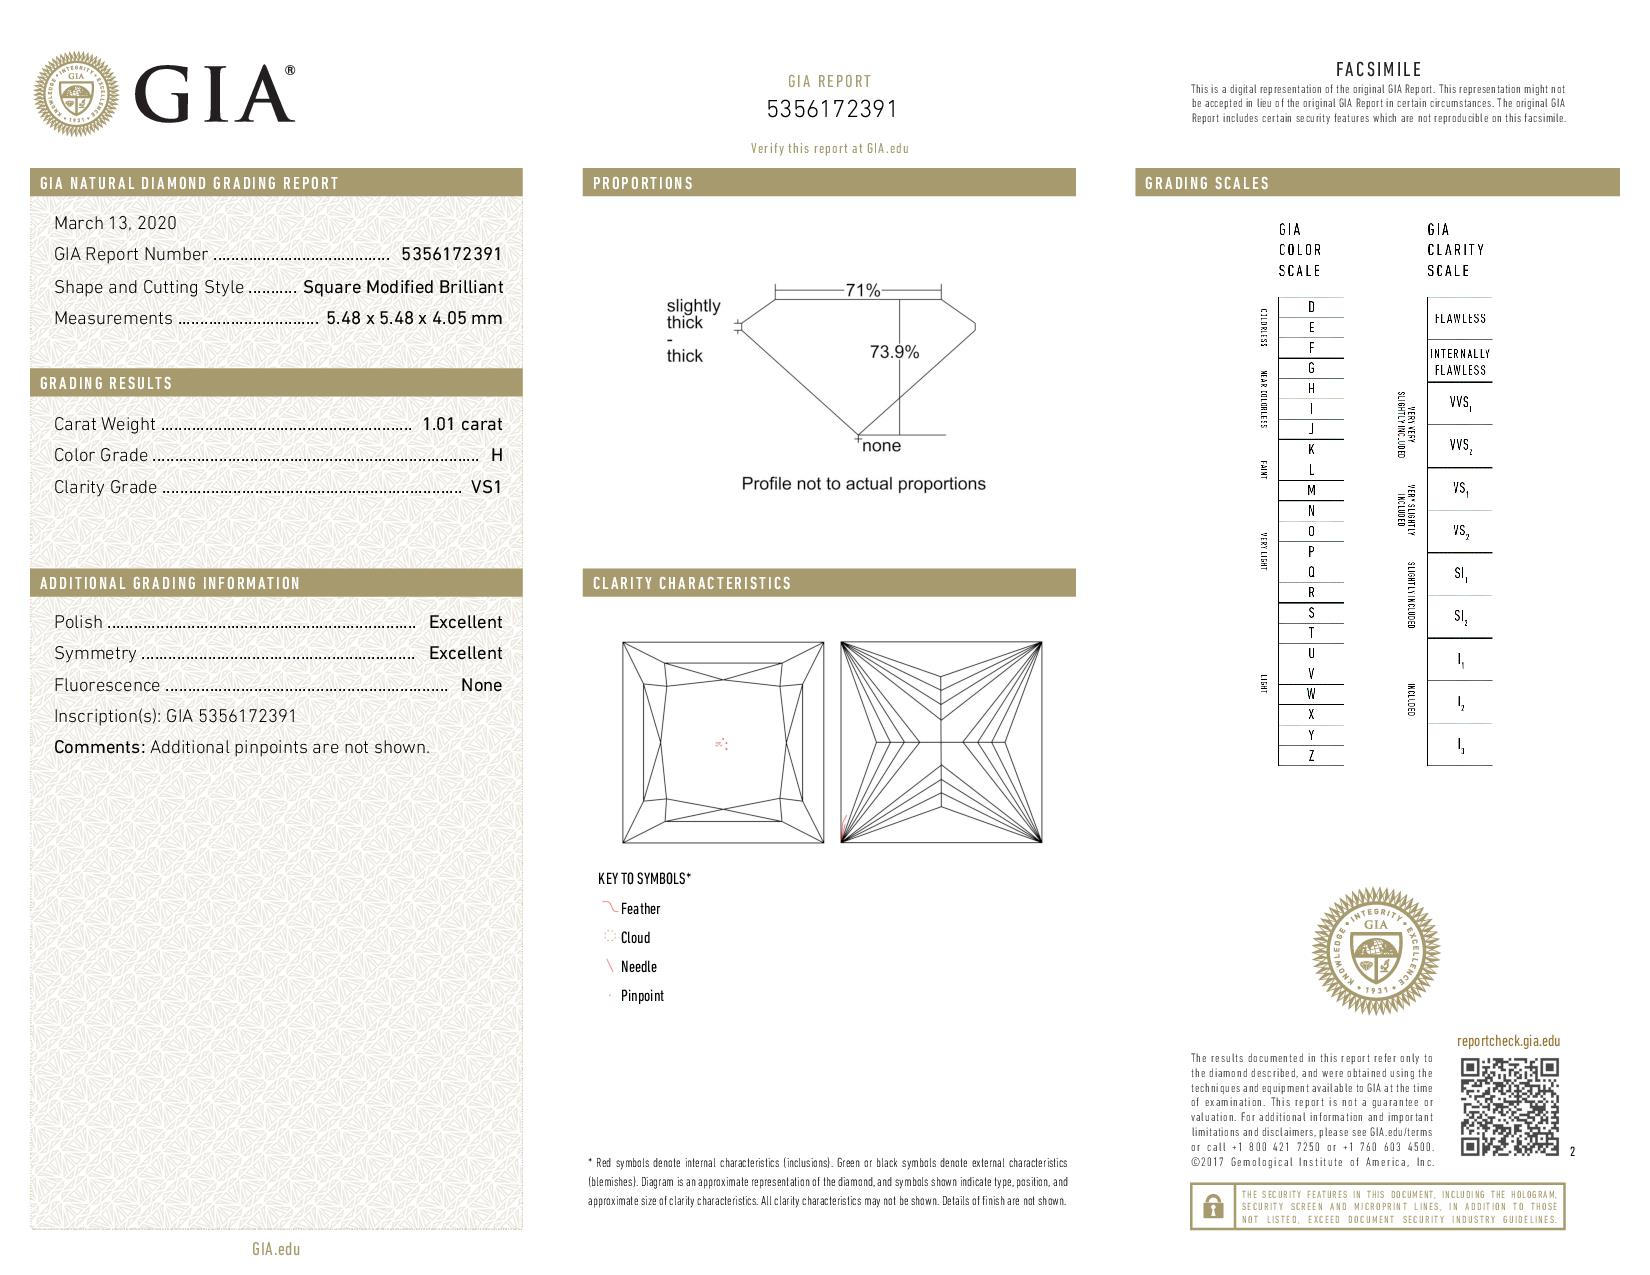 This is a 1.01 carat princess shape, H color, VS1 clarity natural diamond accompanied by a GIA grading report.